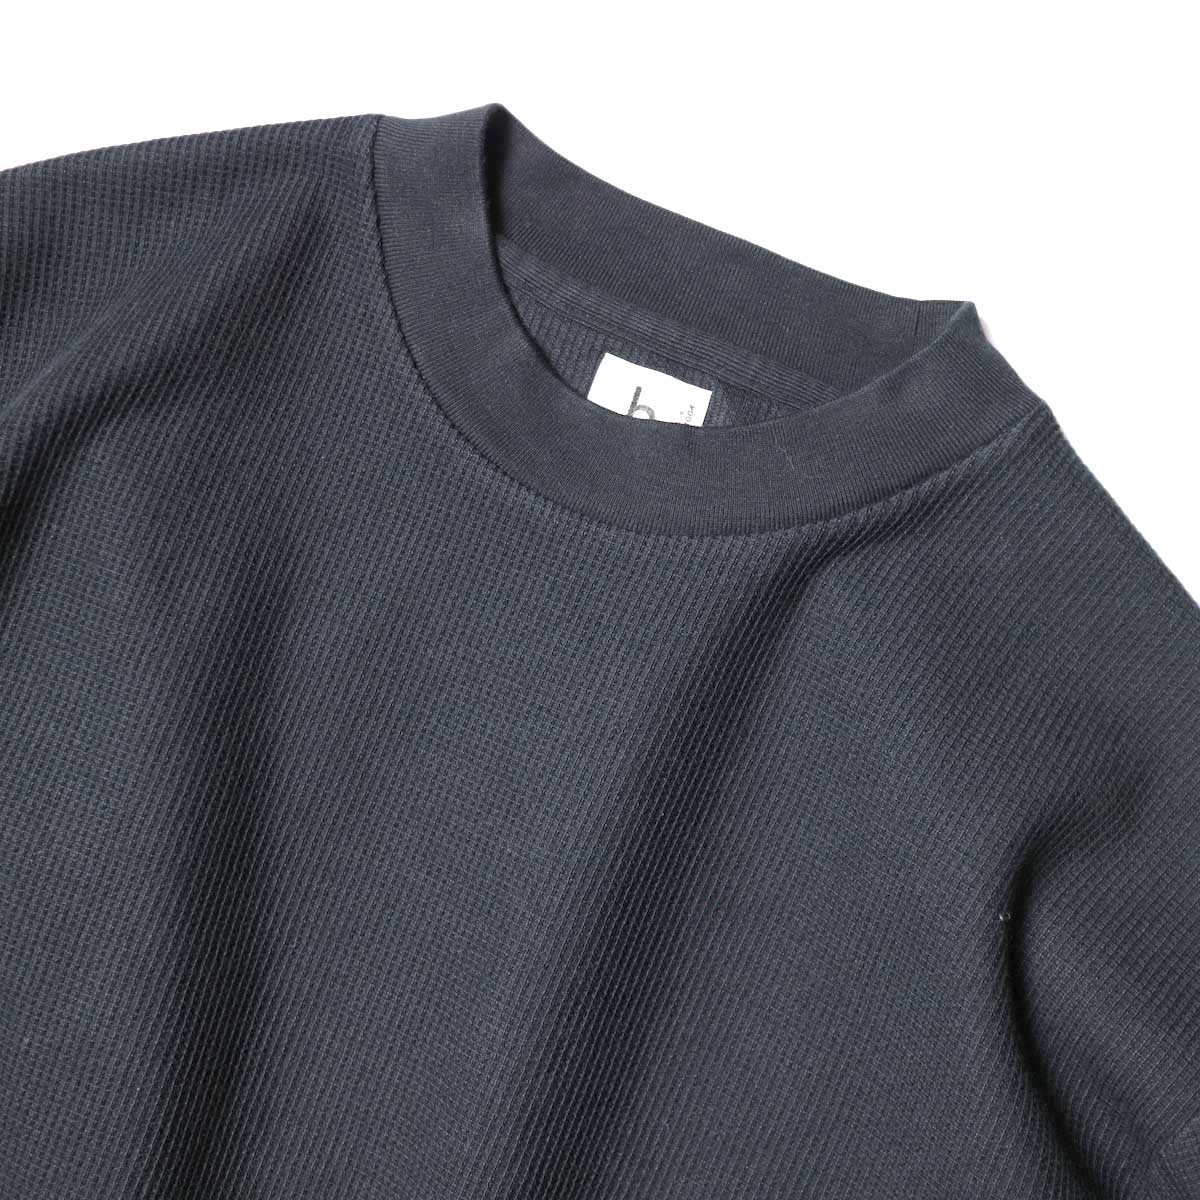 blurhms / Rough&Smooth Thermal Pullover S/S (Black) 襟